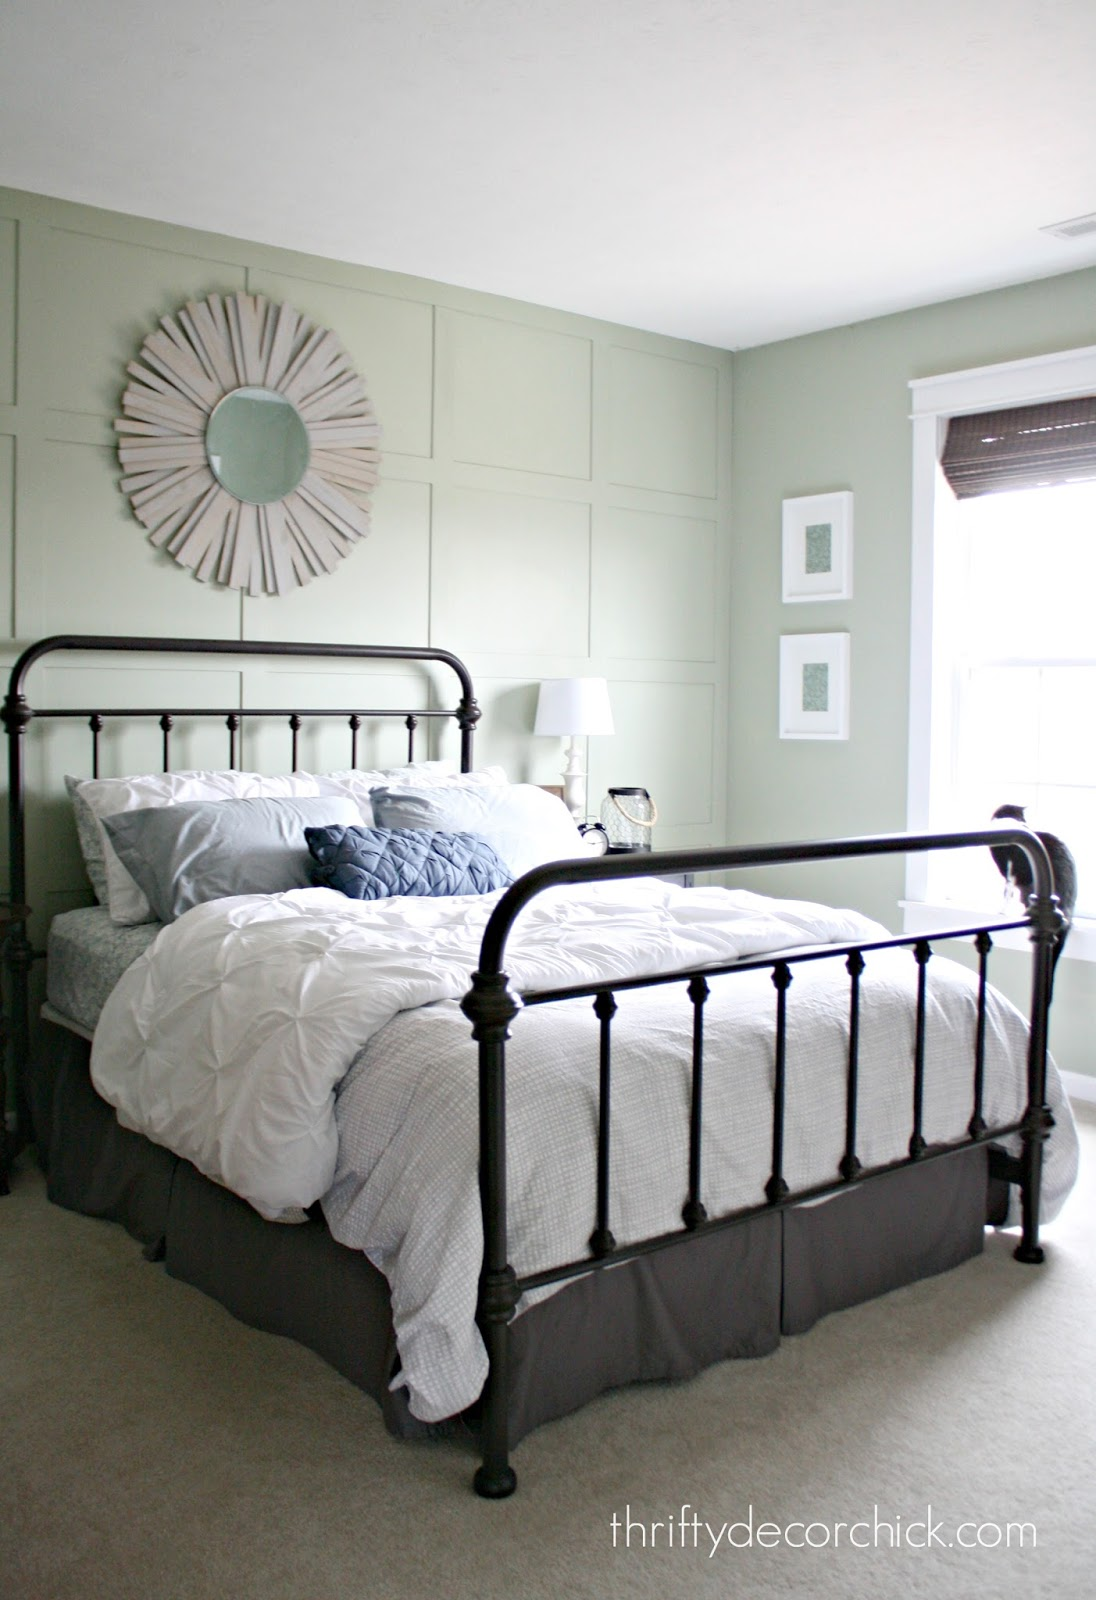 Metal Bed Bedroom A Pretty New Metal Bed From Thrifty Decor Chick